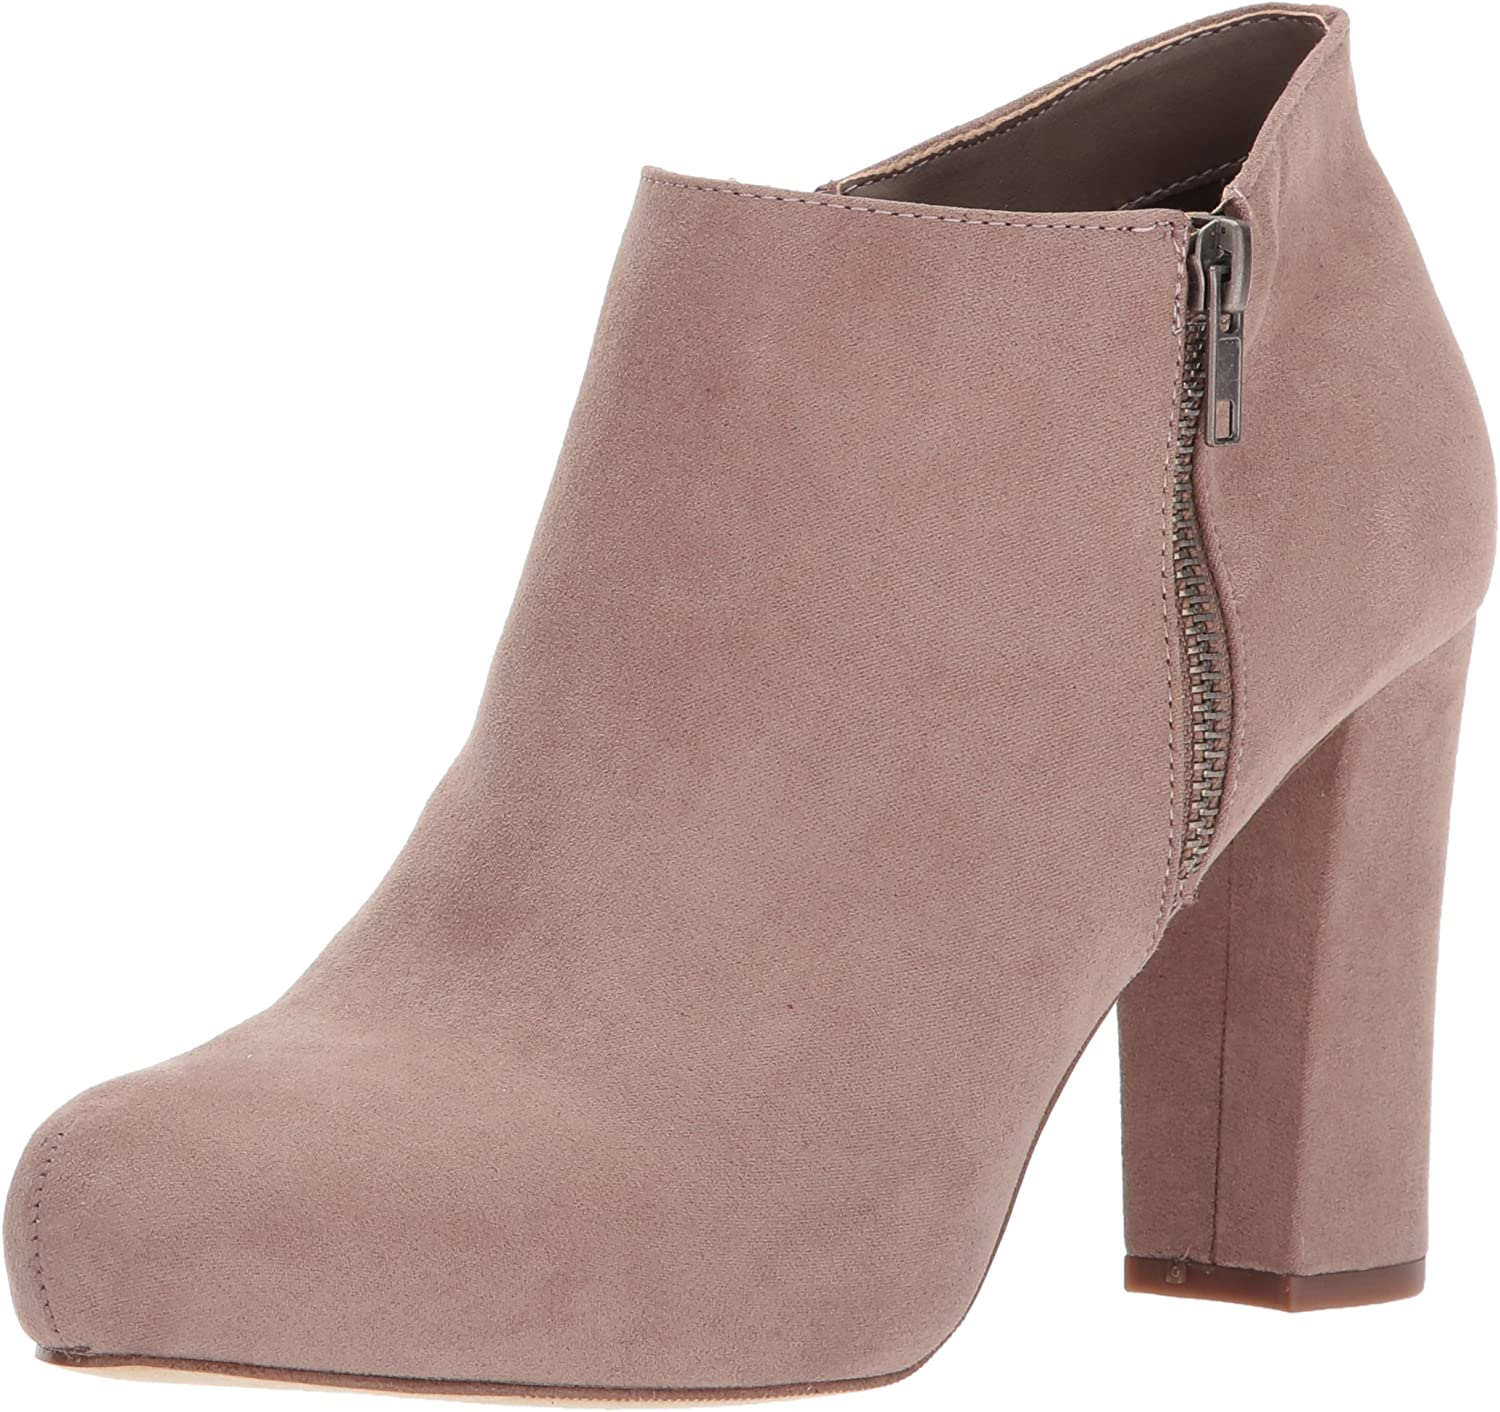 Madden girl Womens Party Ankle Boot